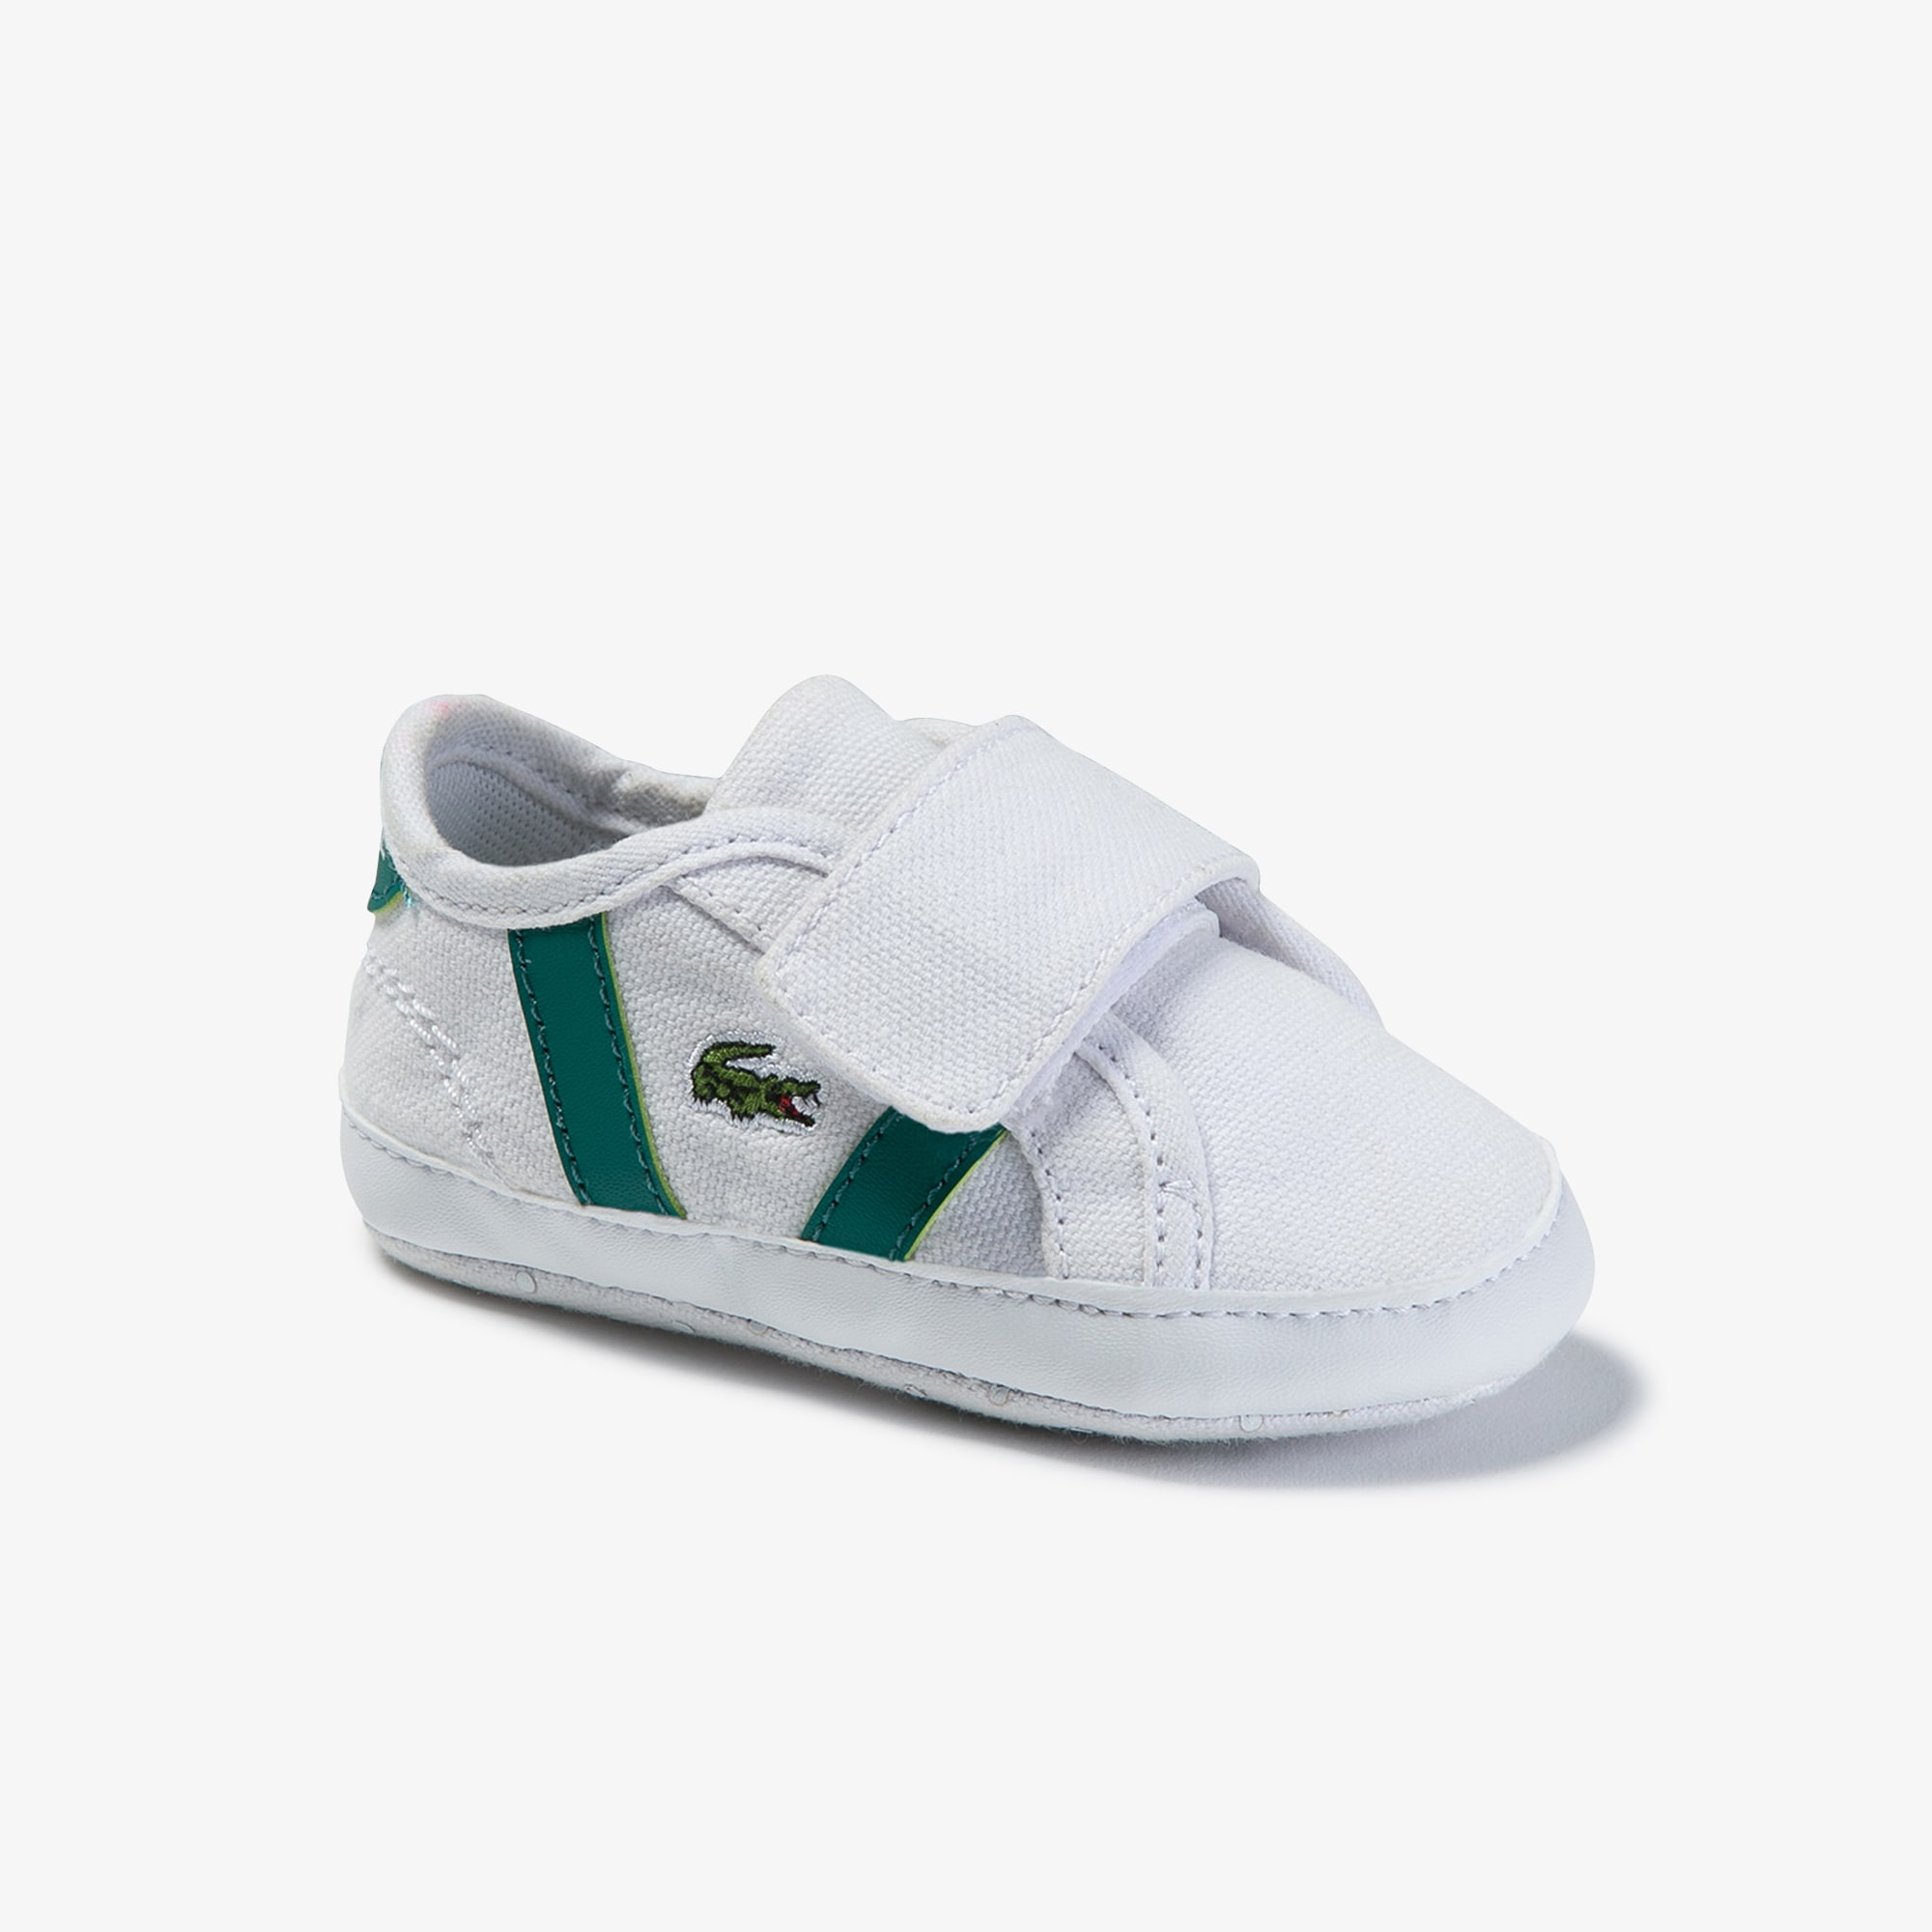 Sneakers da neonati in canvas e materiale sintetico Sideline Crib